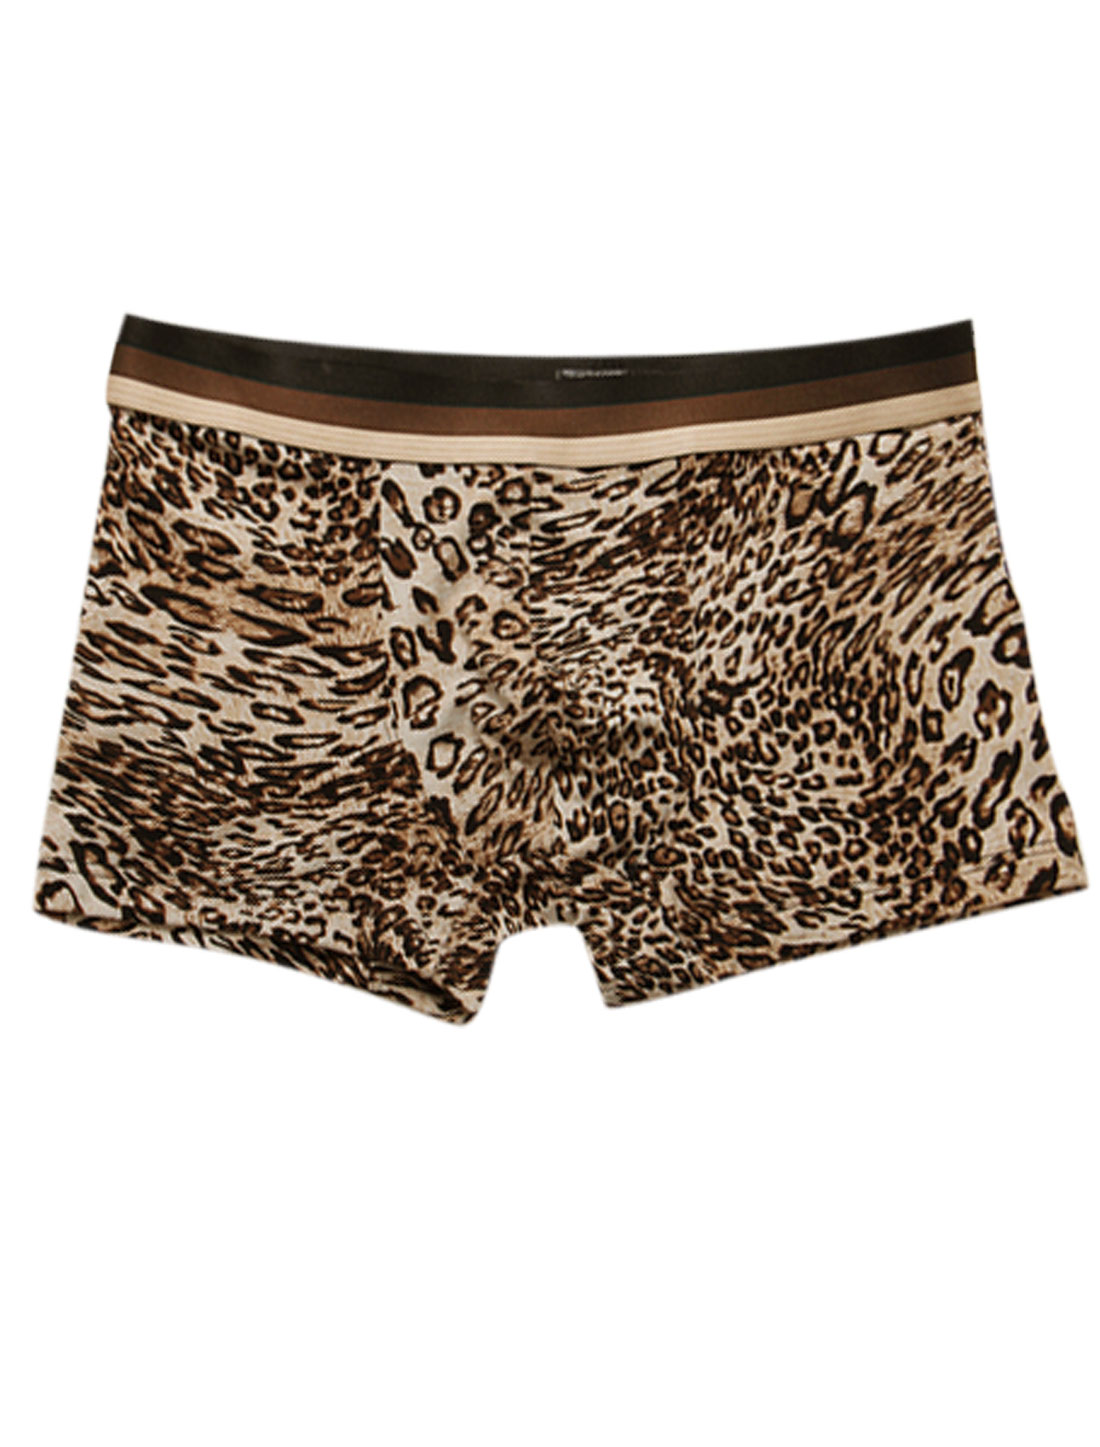 Men Leopard Pattern Elastic Waist Stretchy Boxer Brief Camel Black W30